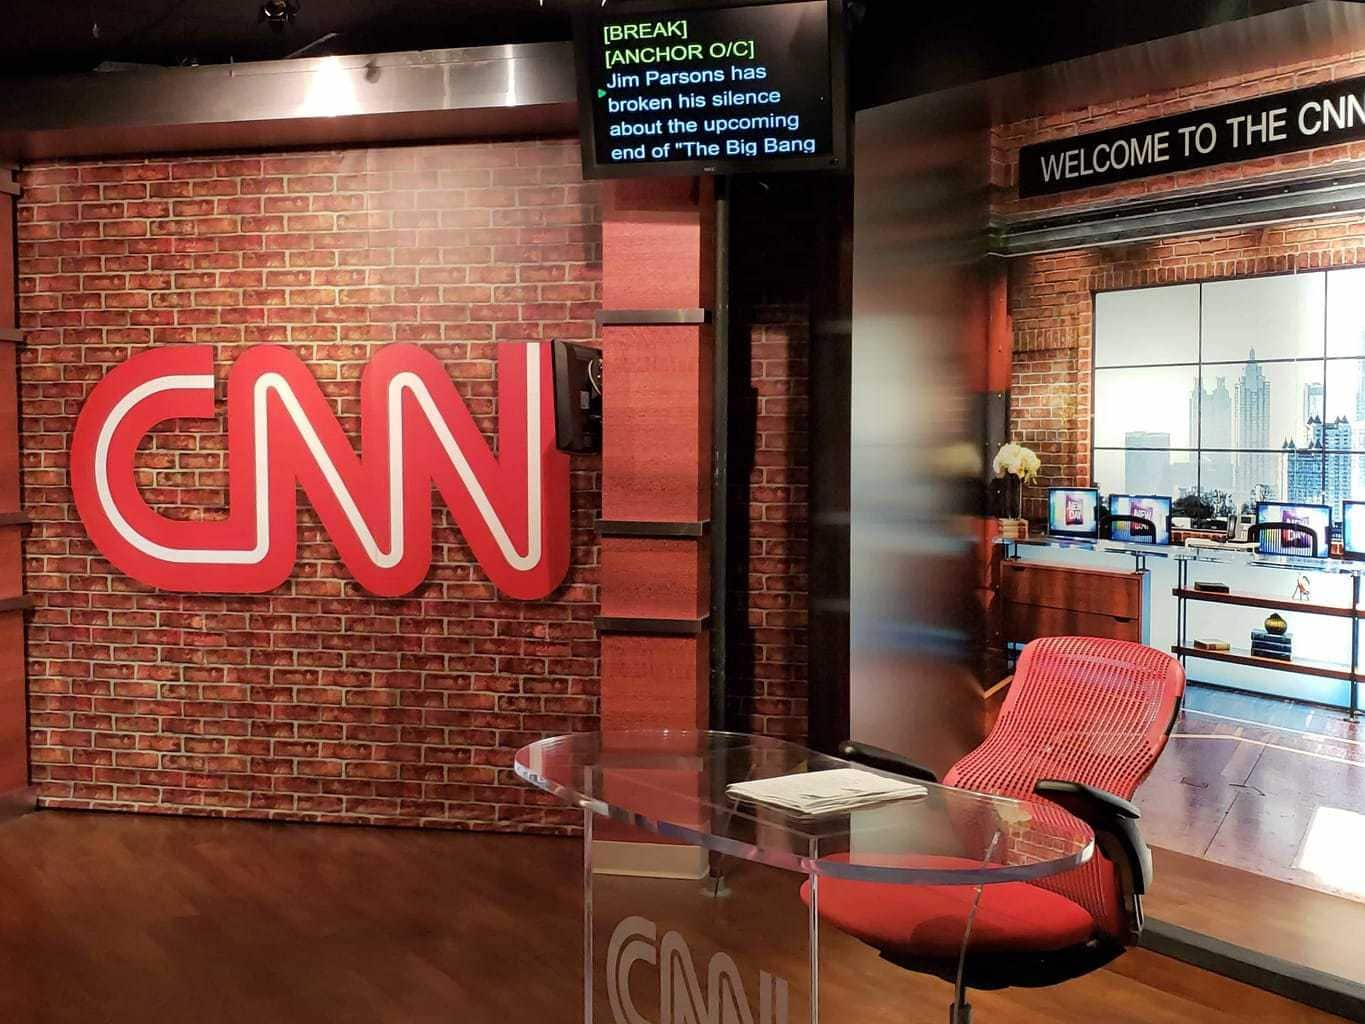 Cnn tour in Atlanta